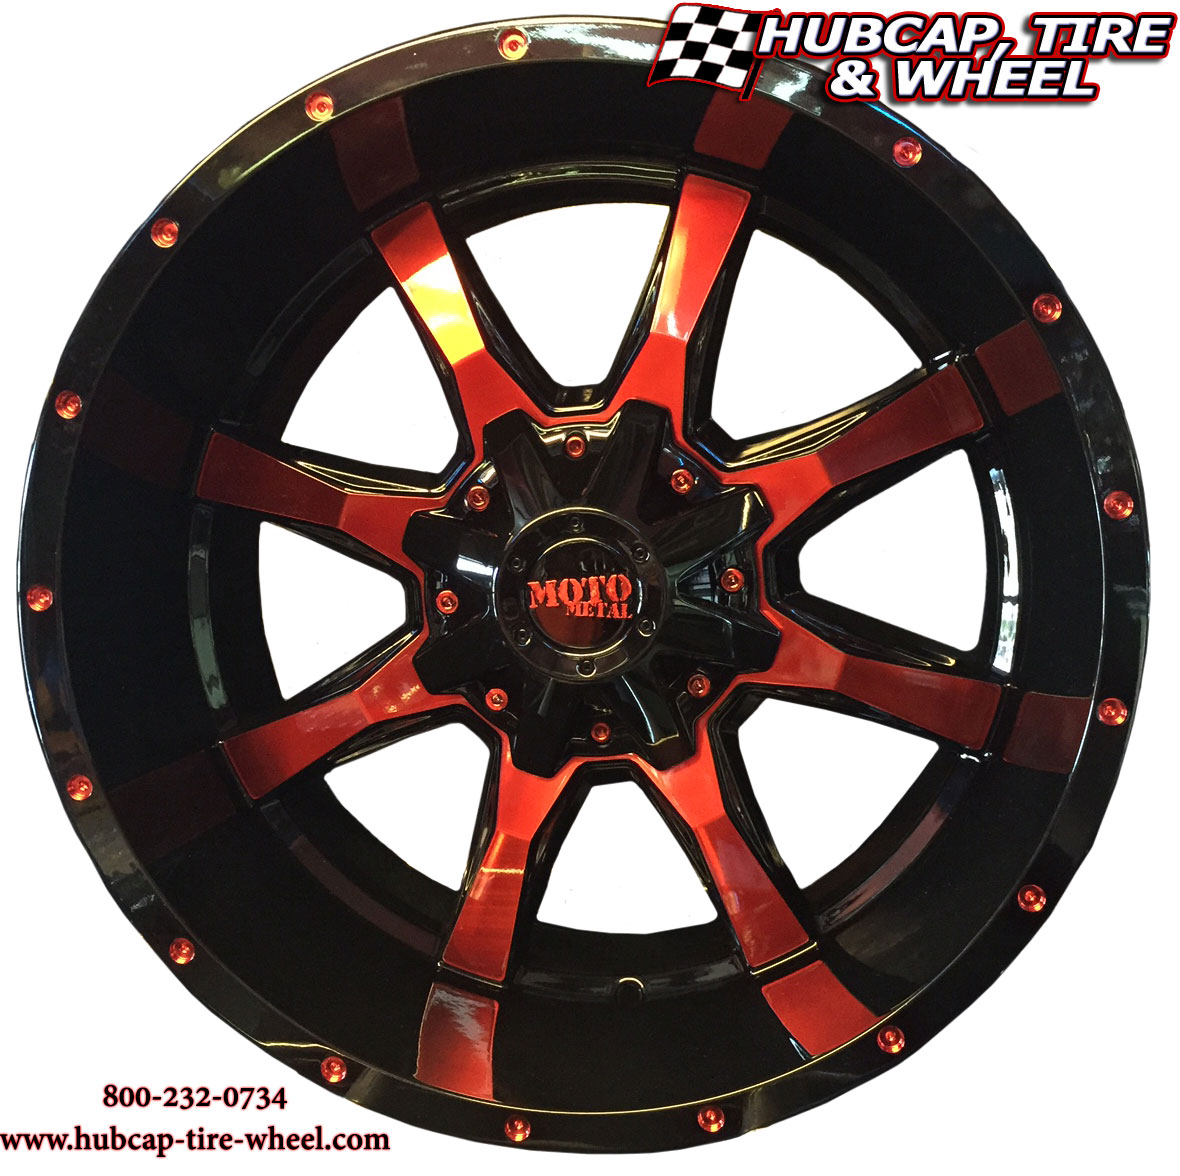 New Custom Painted Wheels Moto Metal Mo970 Black Red 2014 Dodge Ram Paint Colors 970 Clear Coat Aftermarket Rims